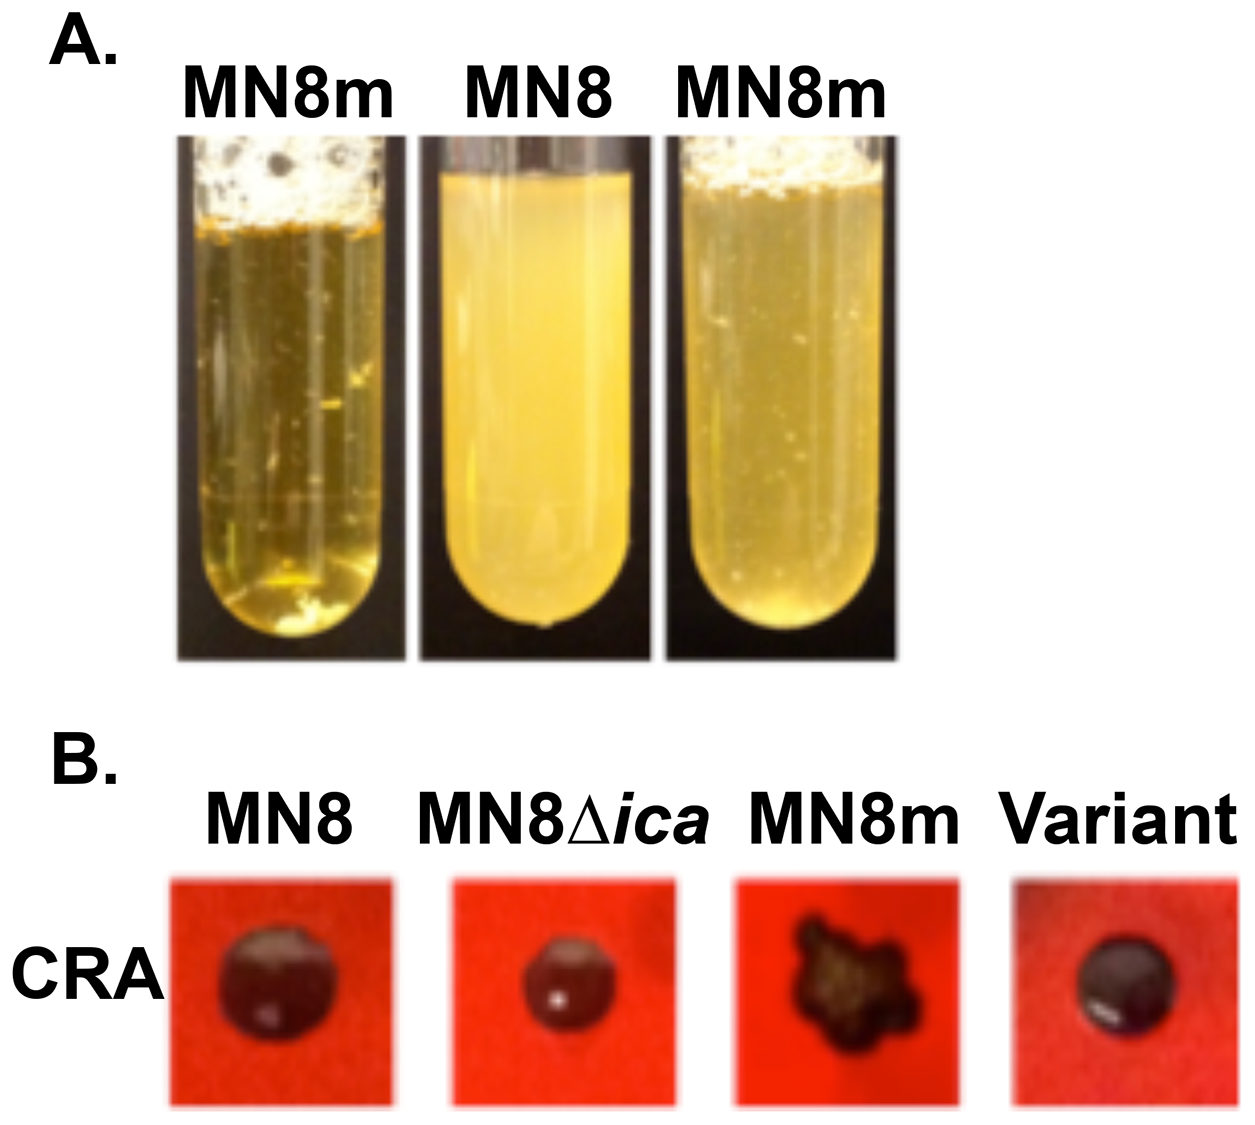 Phenotype characterization of non-mucoid variants isolated from mucoid strain MN8m.